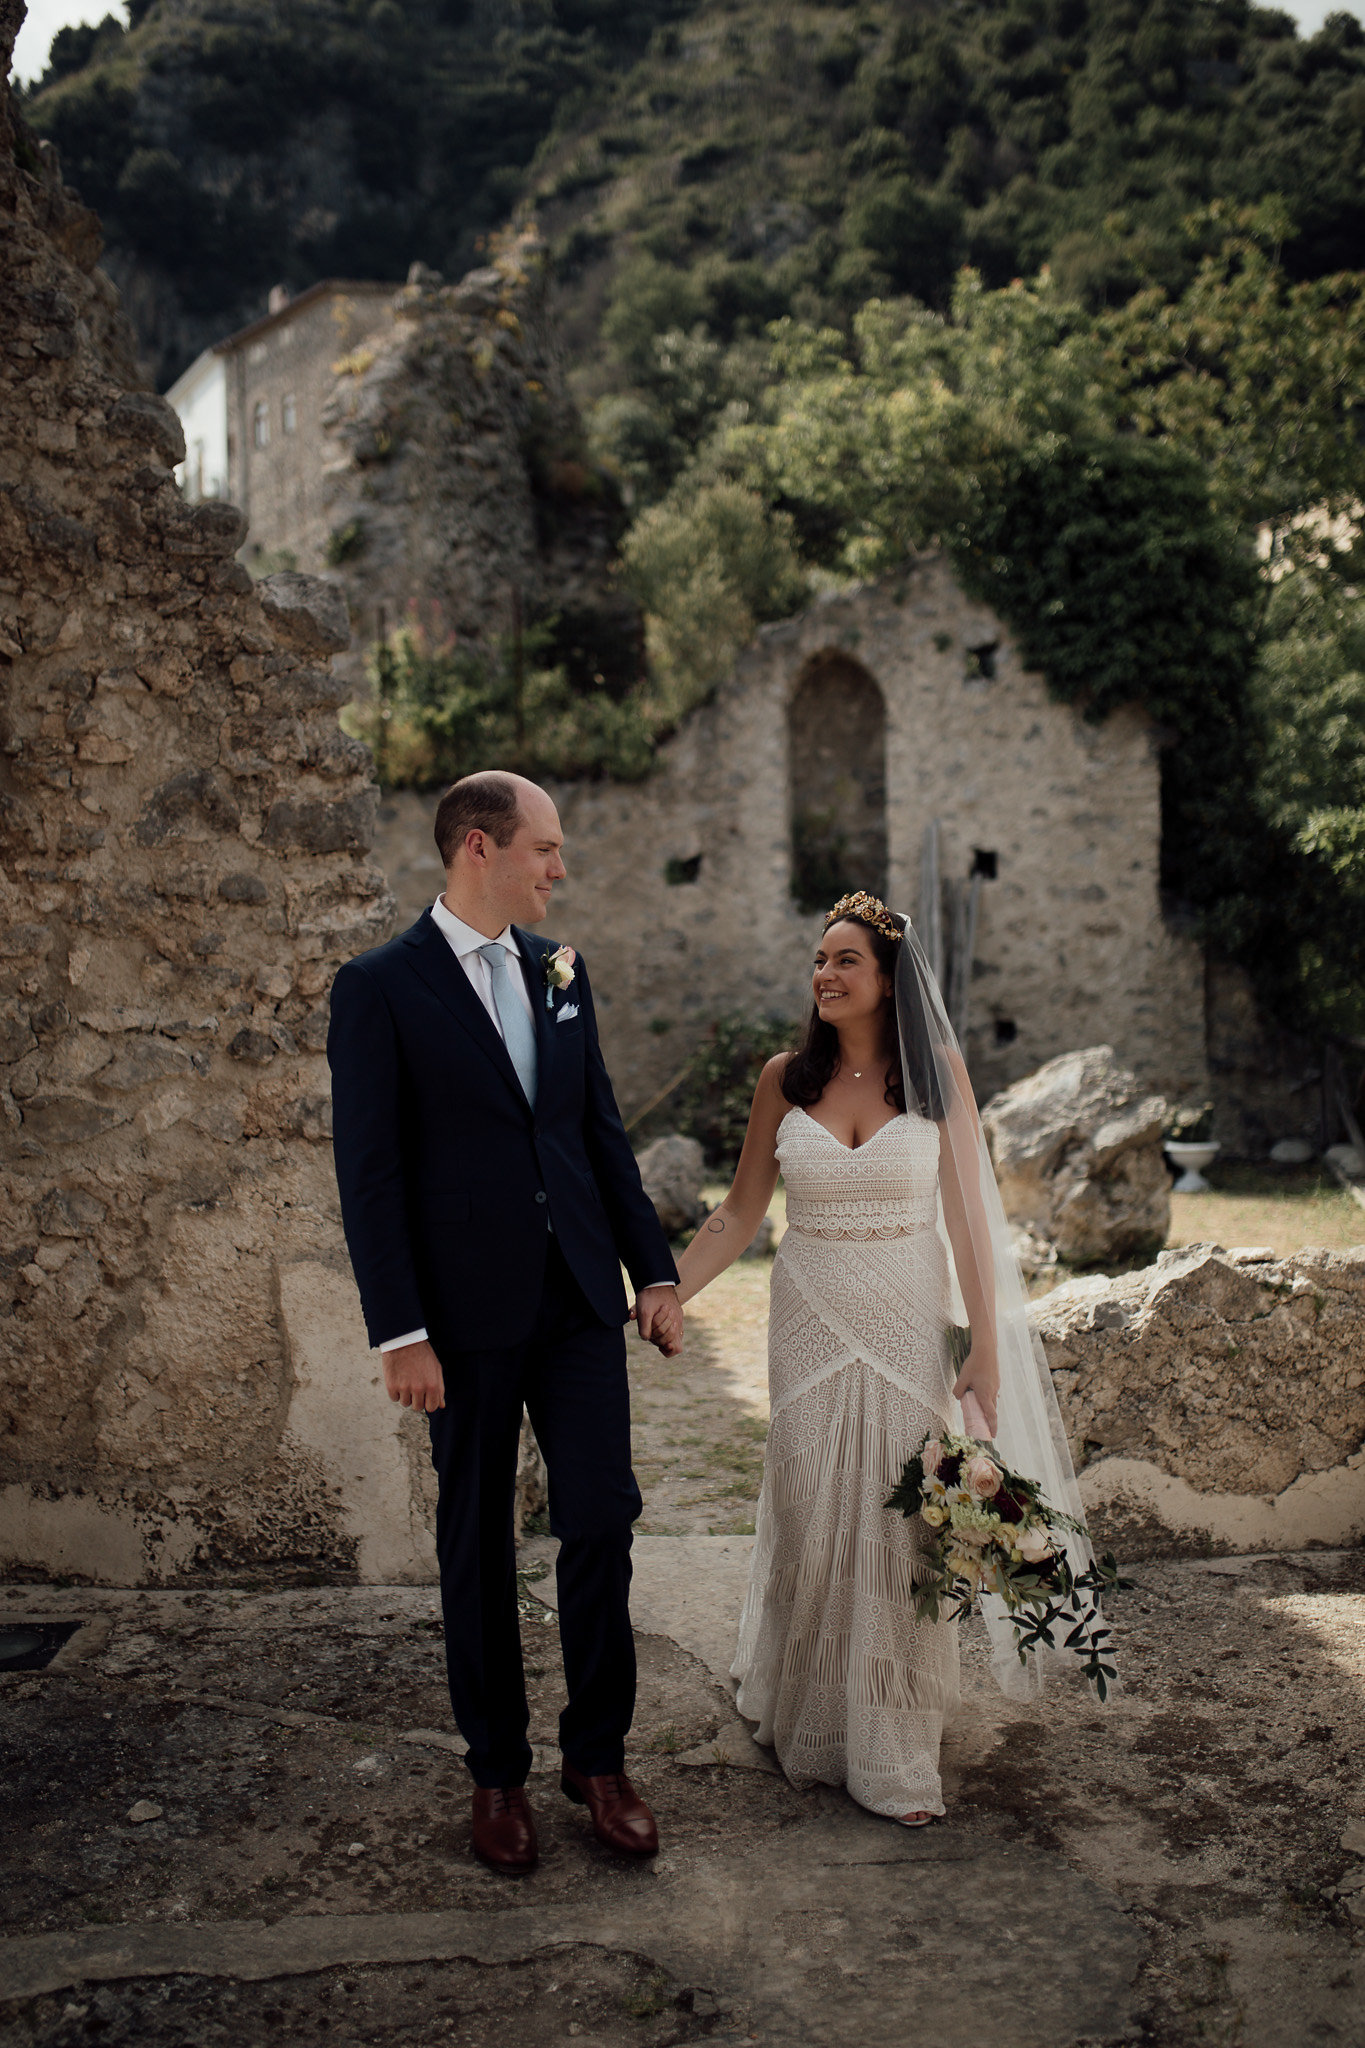 Categories: Weddings-Real Wedding: Rosalie & Patrick - Photography by Free the Bird